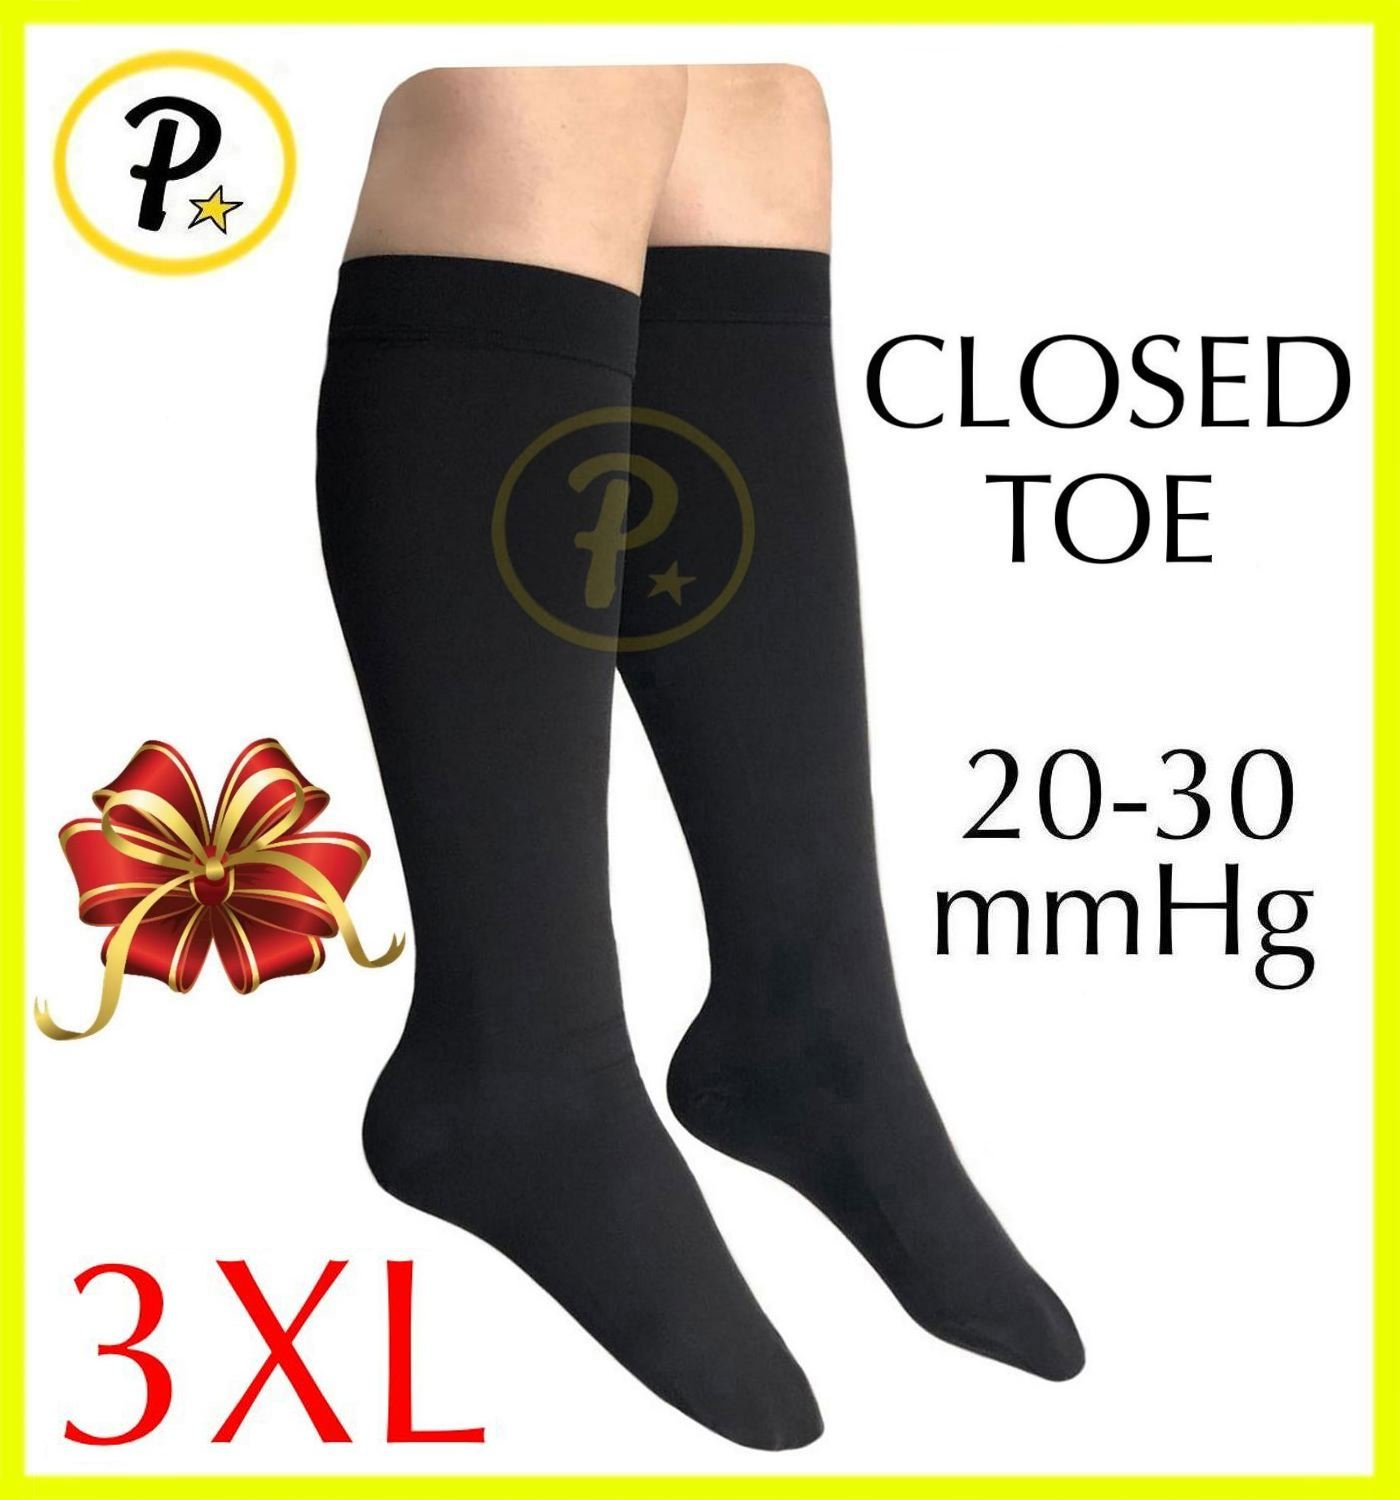 Presadee Closed Toe (BIG & TALL SUPER SIZE) Traditional 20-30 mmHg Compression Grade Swelling Veins Ankle Calf Leg Sock Support (3XL, Black)